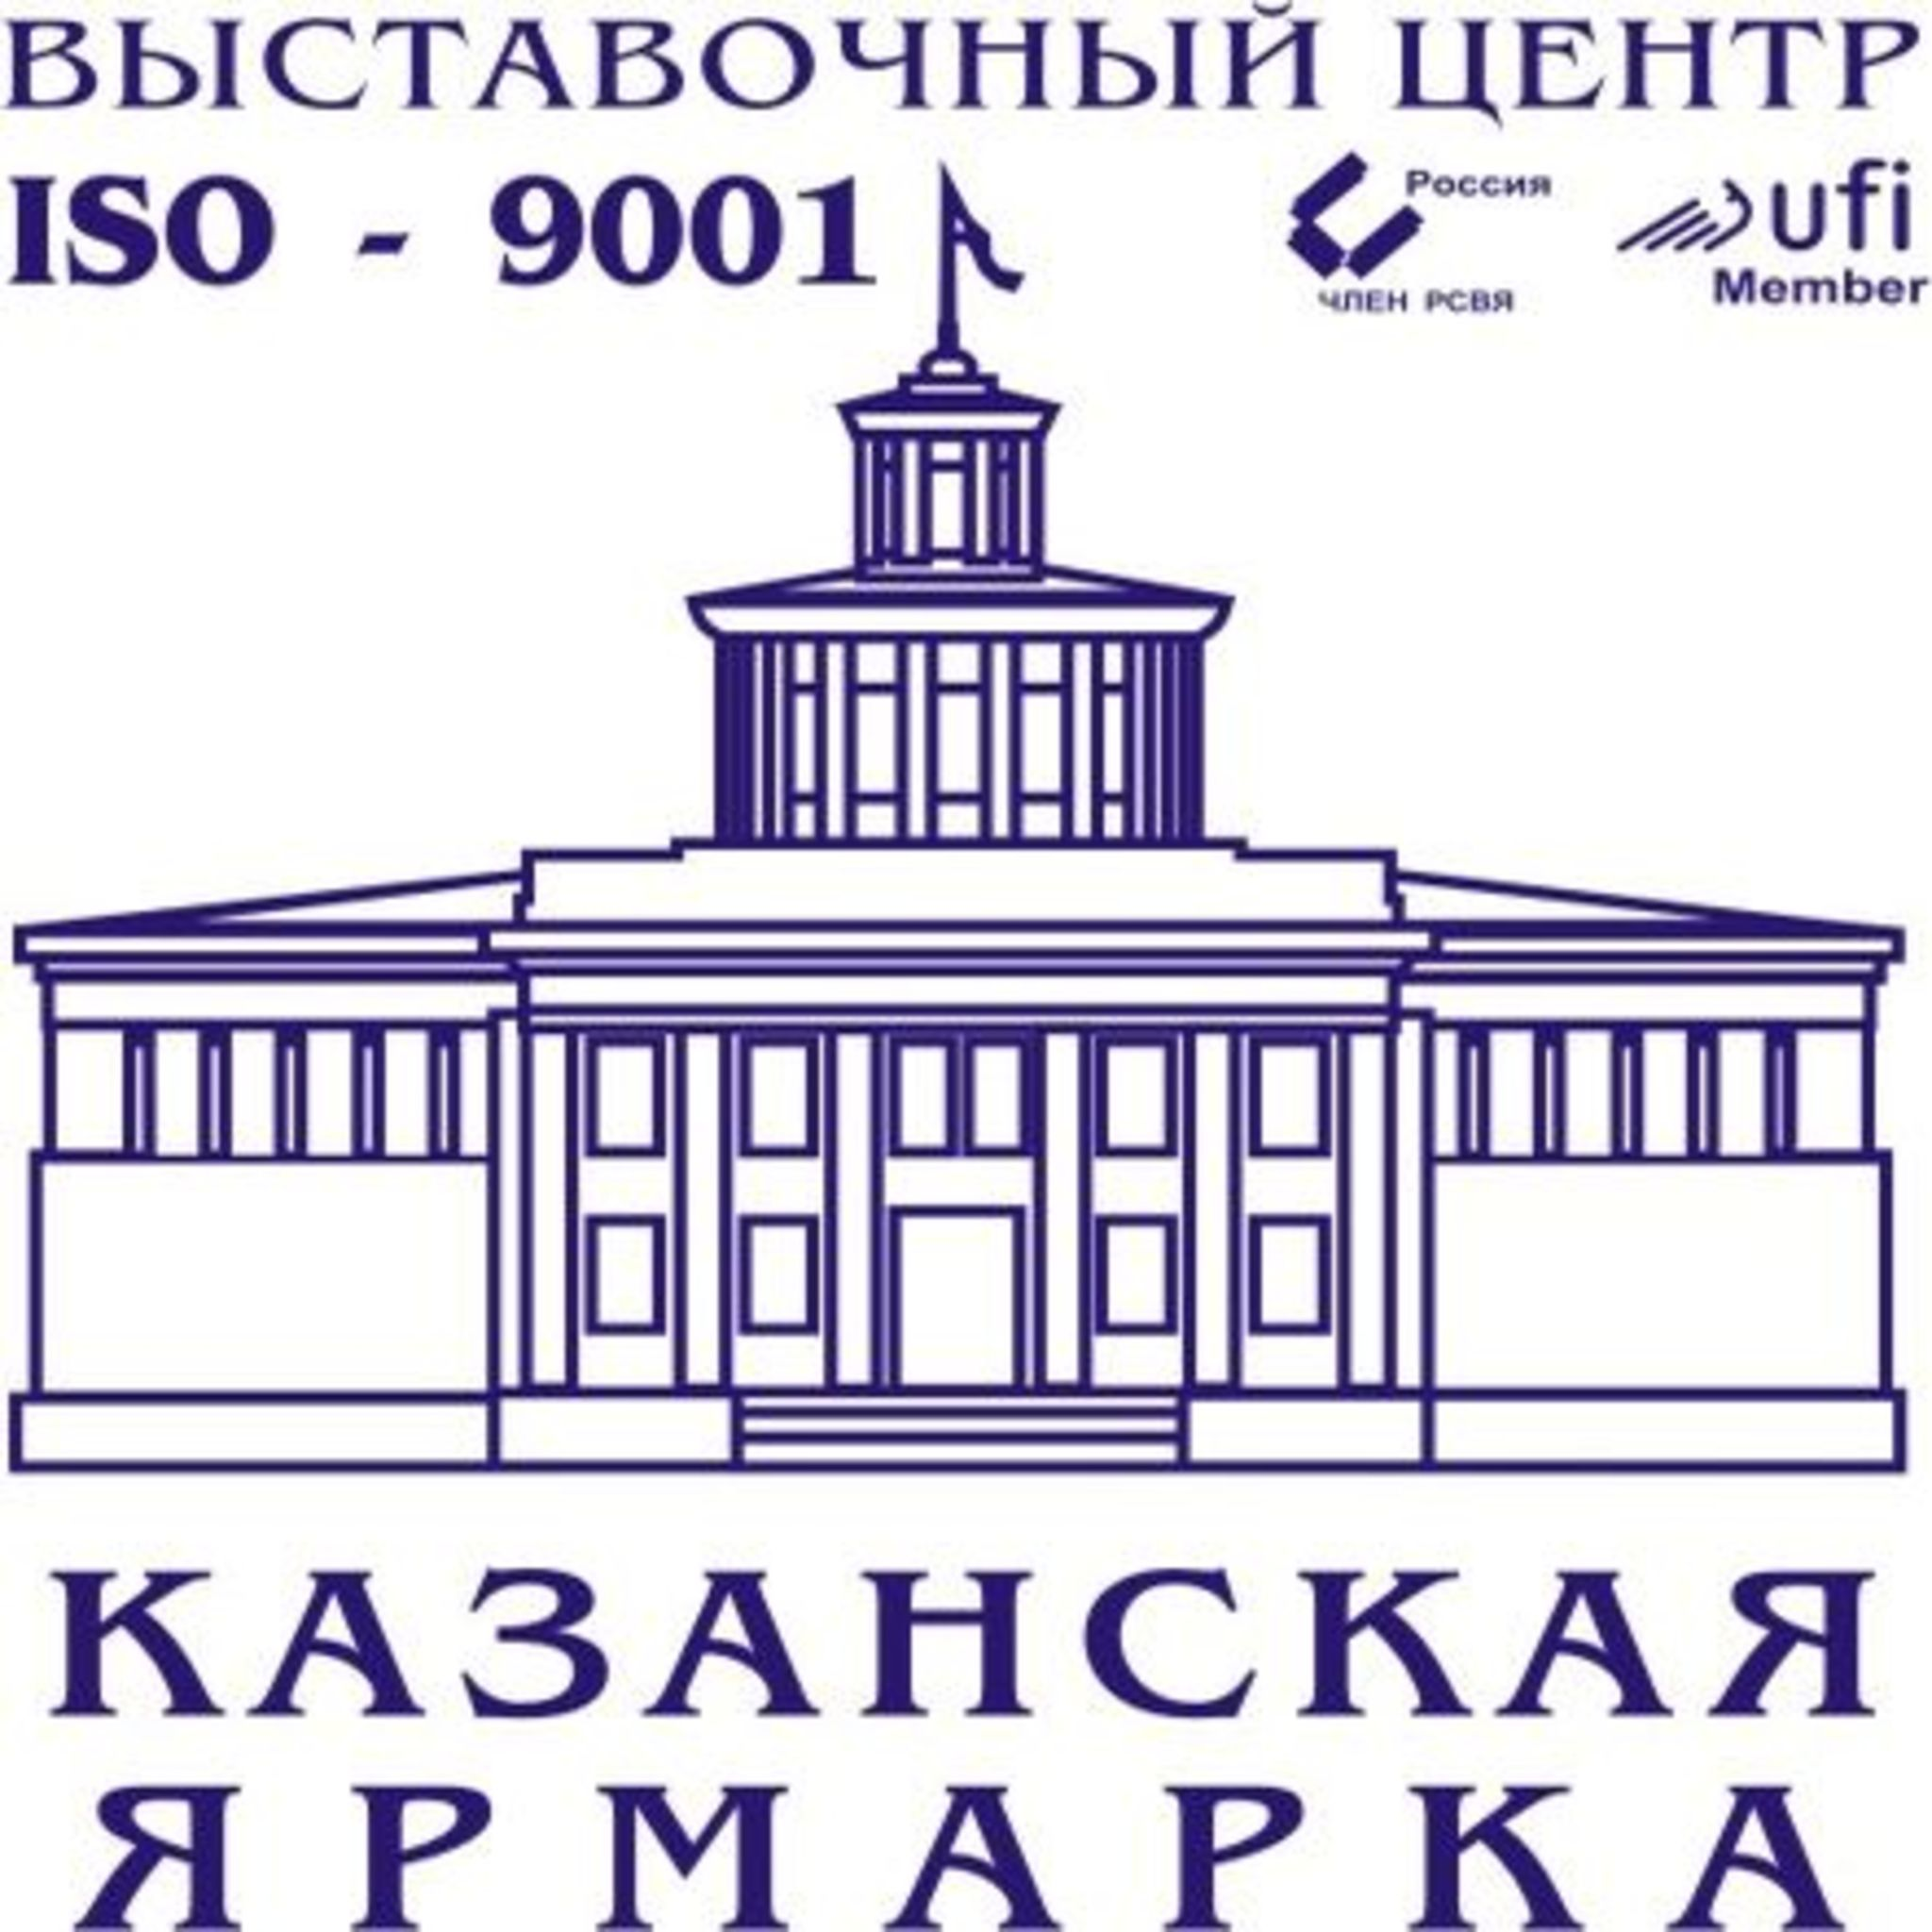 The exhibition center Kazanskaya Yarmarka